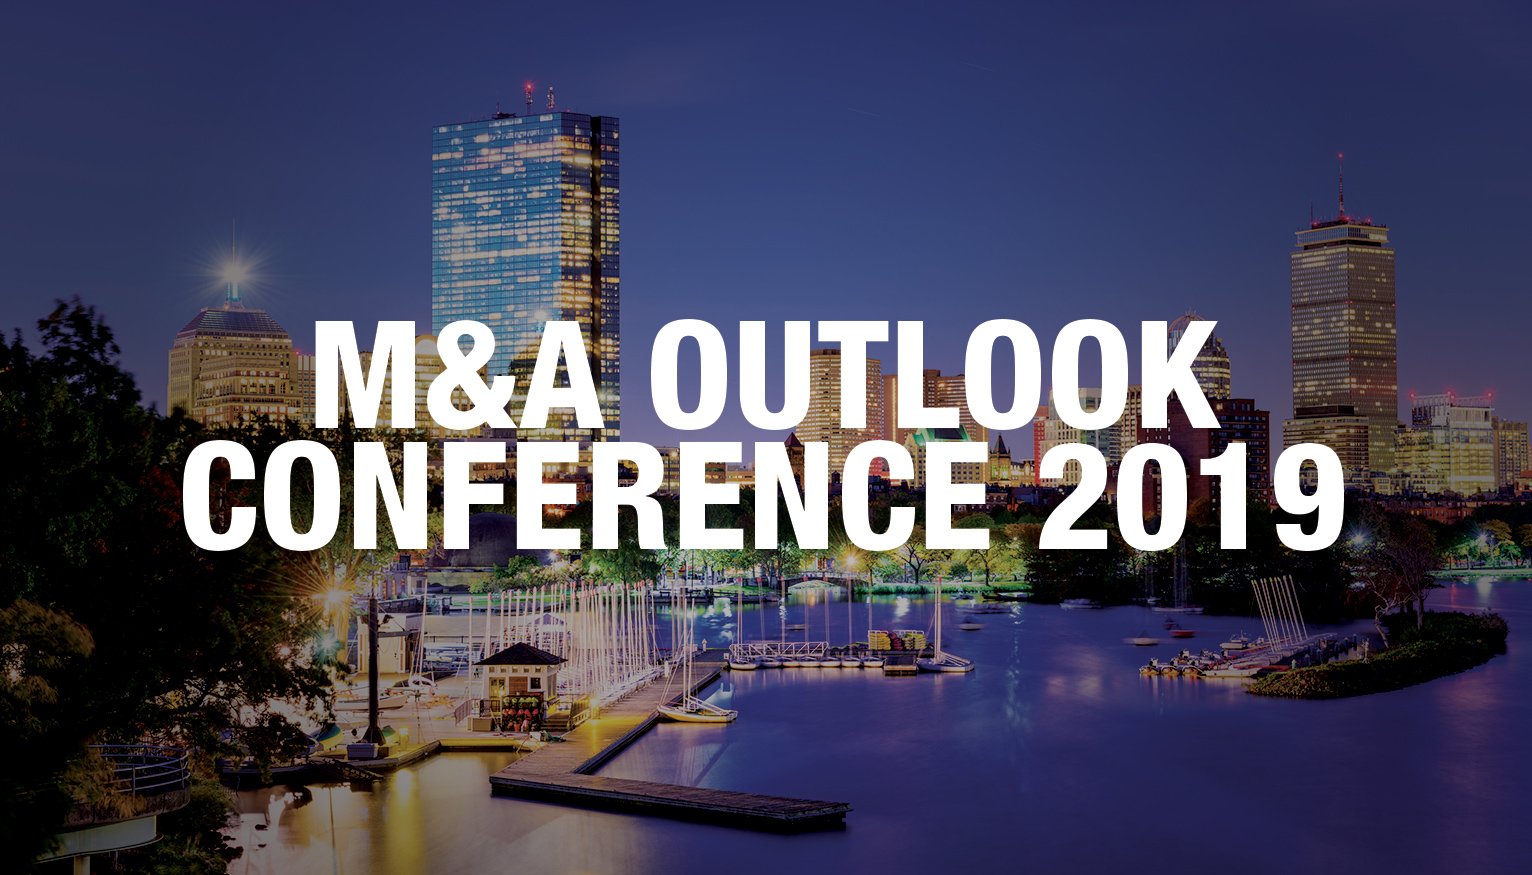 ACG Boston M&A Outlook Conference 2019